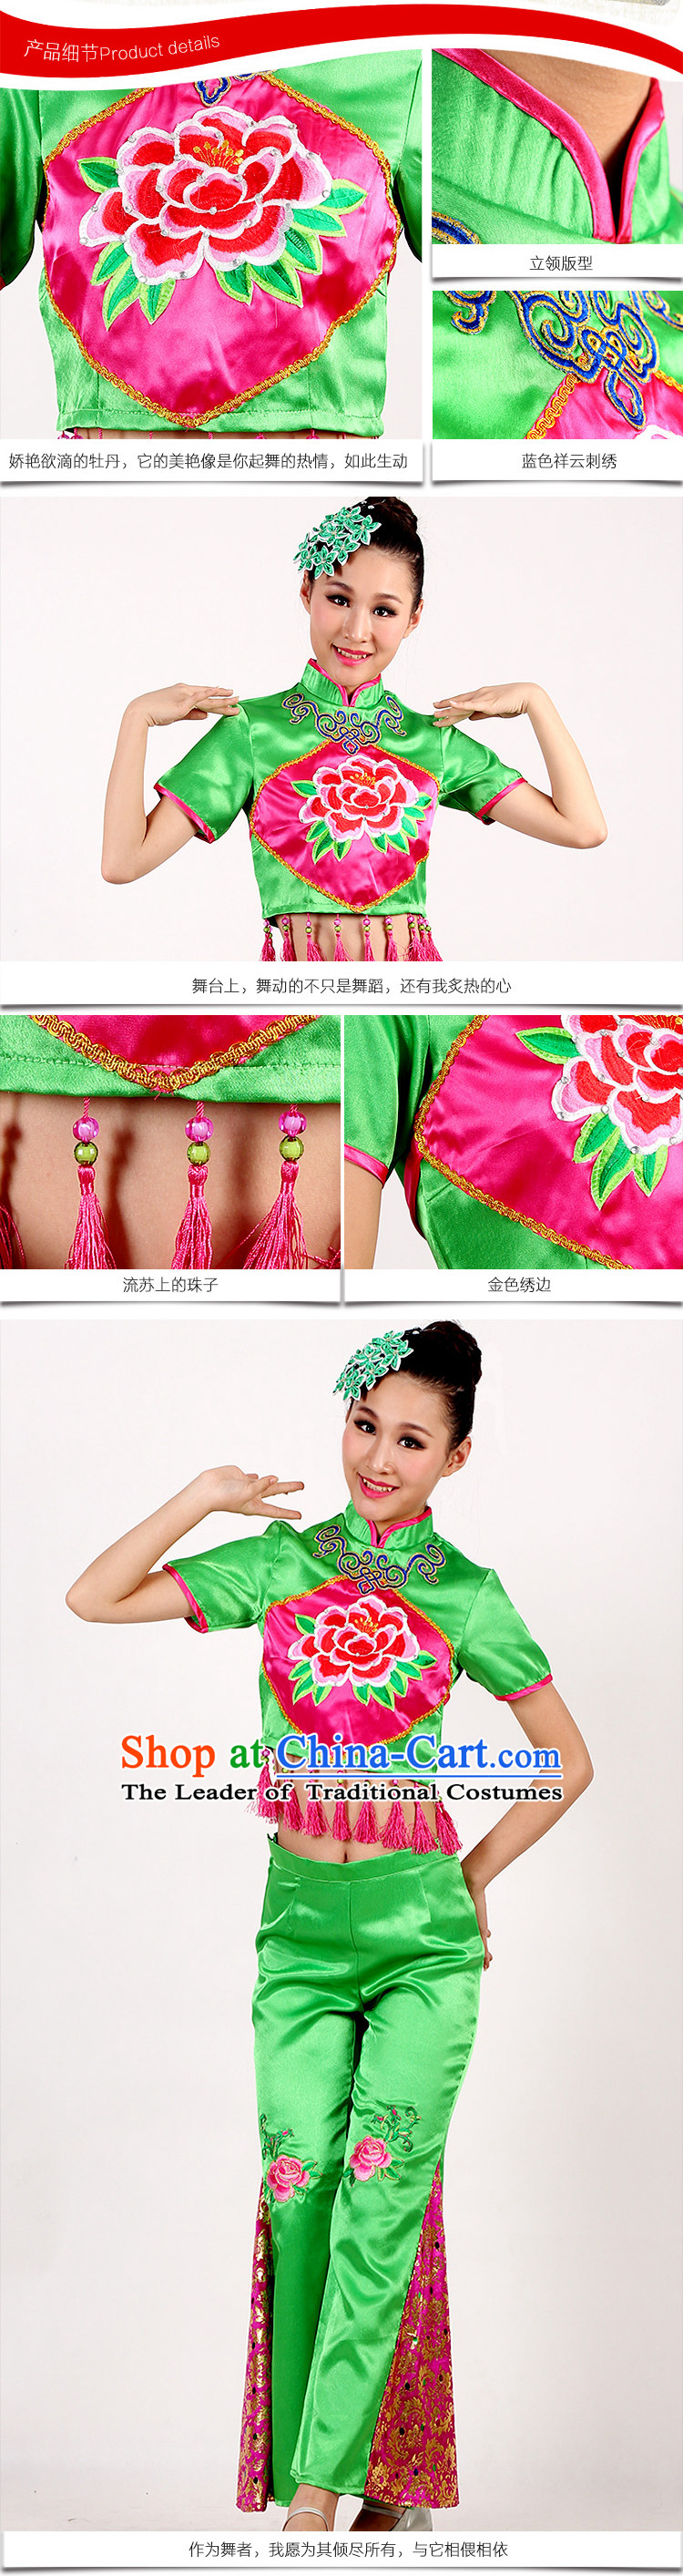 Asia Chinese Festival Parade Fan Dance Costume and Headpiece for Women